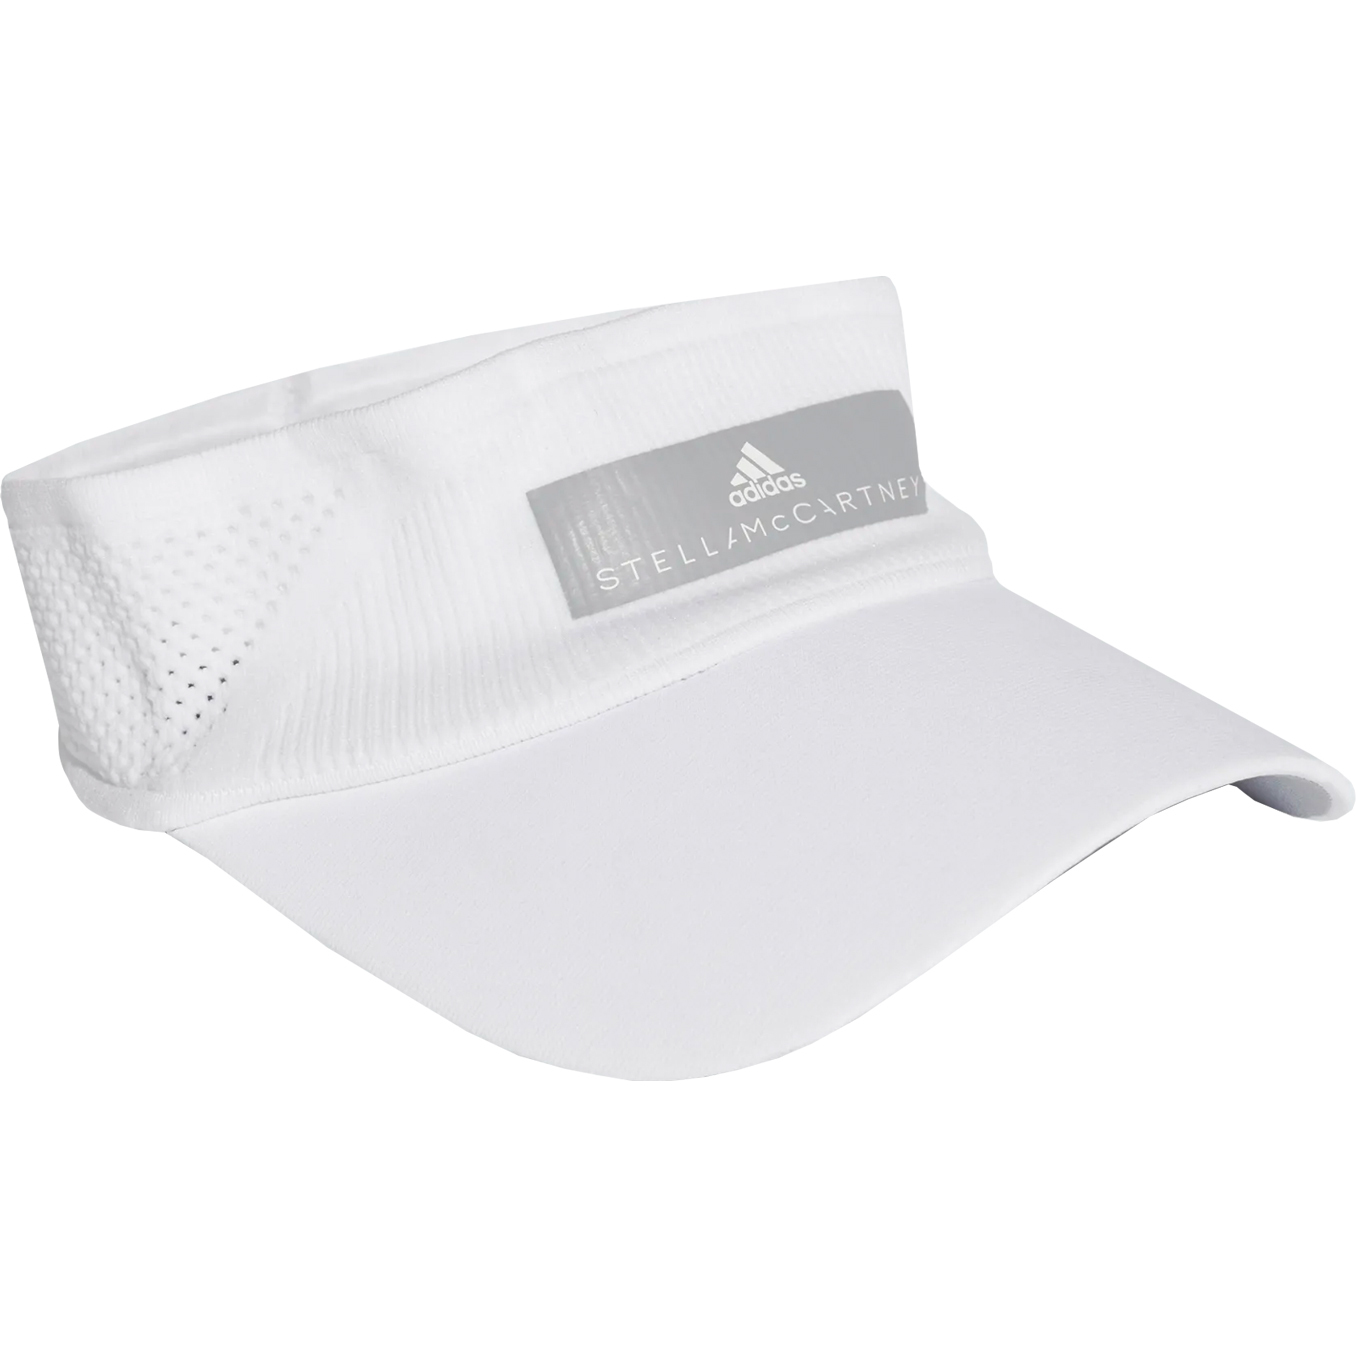 c922058e8960 FootJoy DryJoys Tour Golf Bucket Rain Hat | Clothing | FootJoy | All Square  Golf